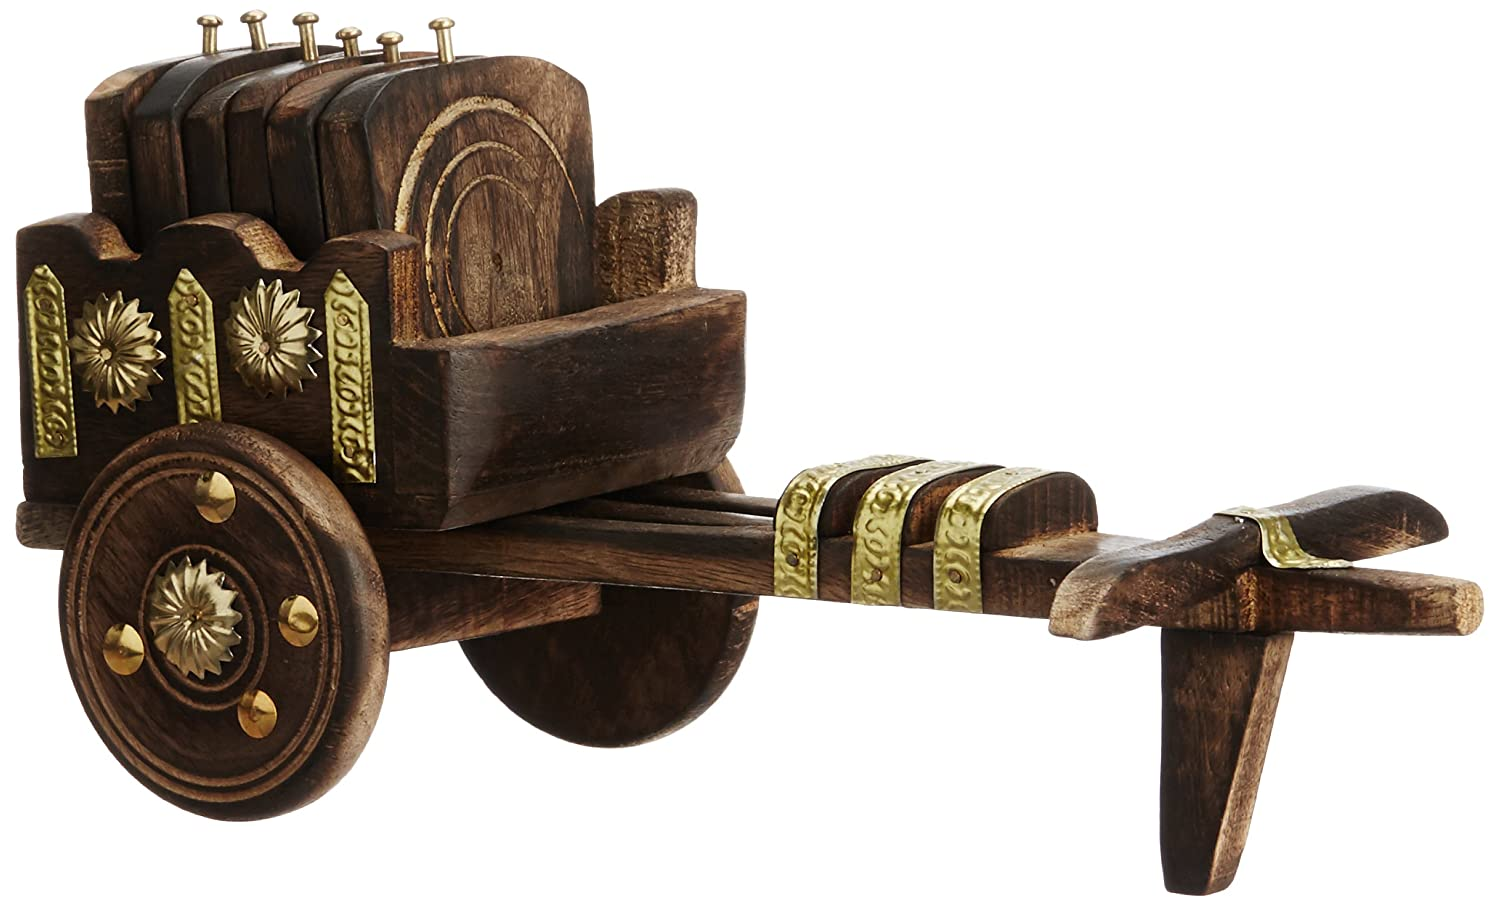 Birthday Gifts - Bullock Cart Coaster Set